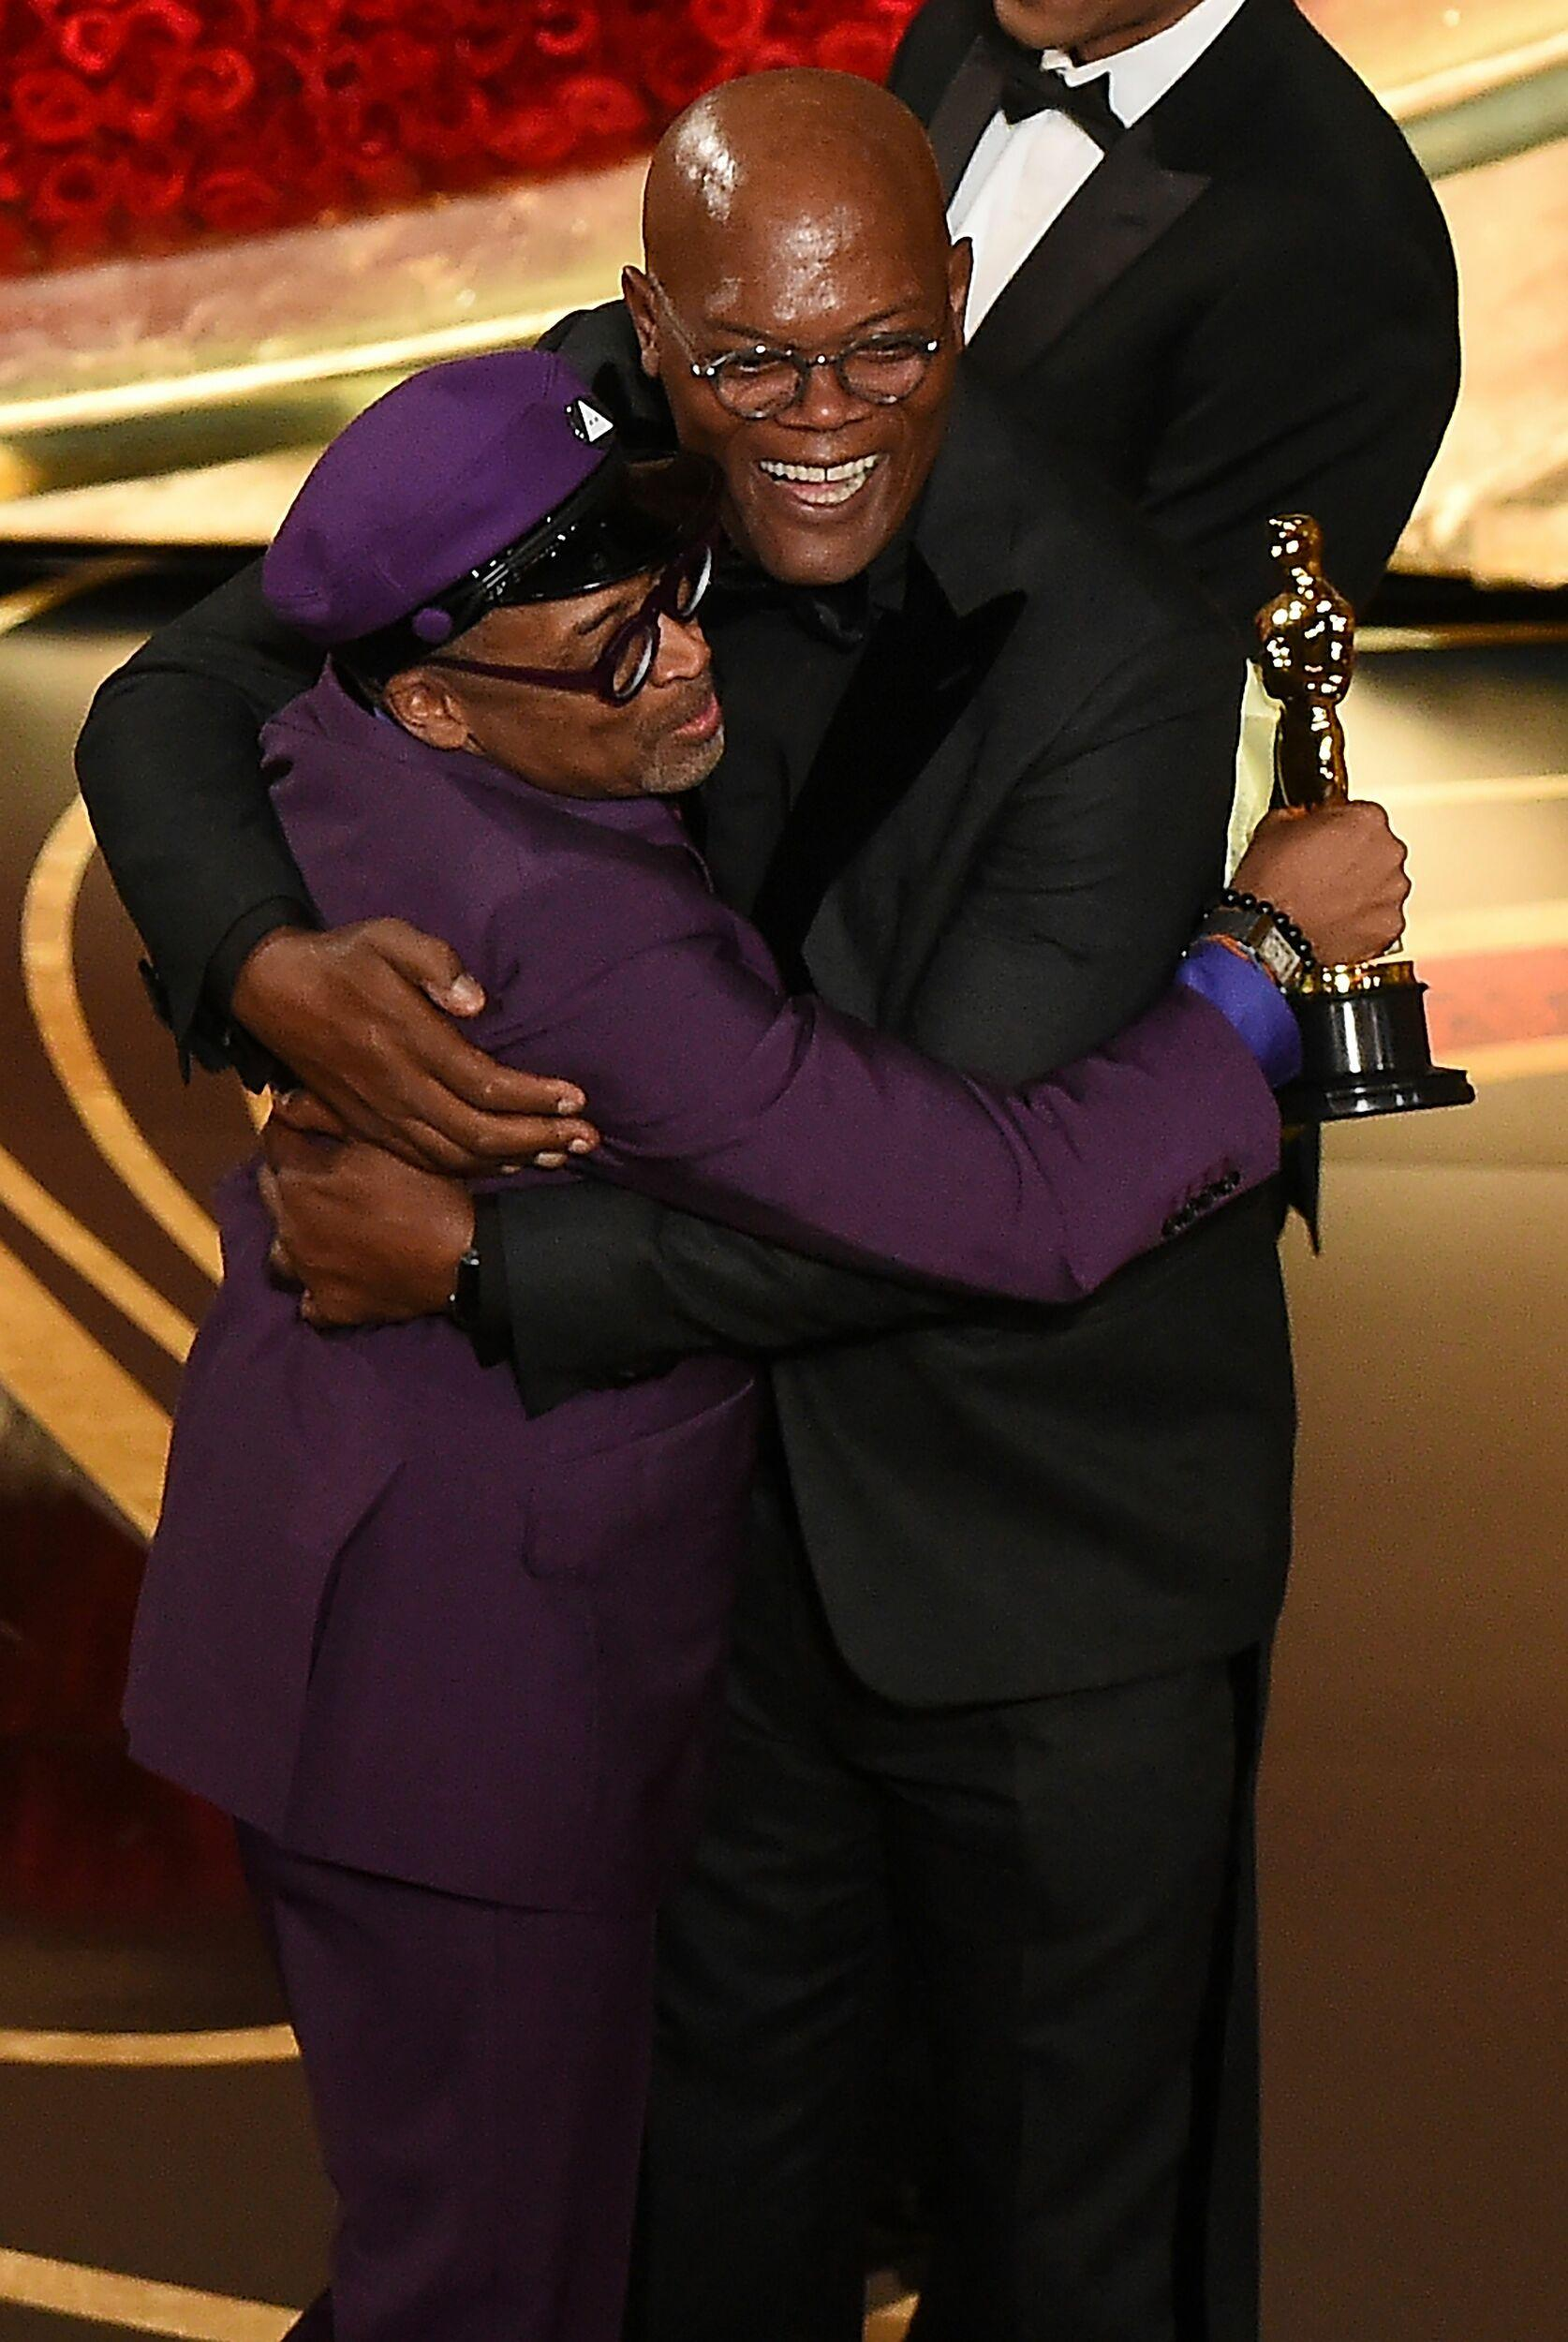 Best Adapted Screenplay nominee for 'BlacKkKlansman' Spike Lee embraces actor Samuel L. Jackson as he accepts the award for Best Original Screenplay during the 91st Annual Academy Awards at the Dolby Theatre in Hollywood, California on February 24, 2019. (Photo by VALERIE MACON / AFP)        (Photo credit should read VALERIE MACON/AFP/Getty Images)